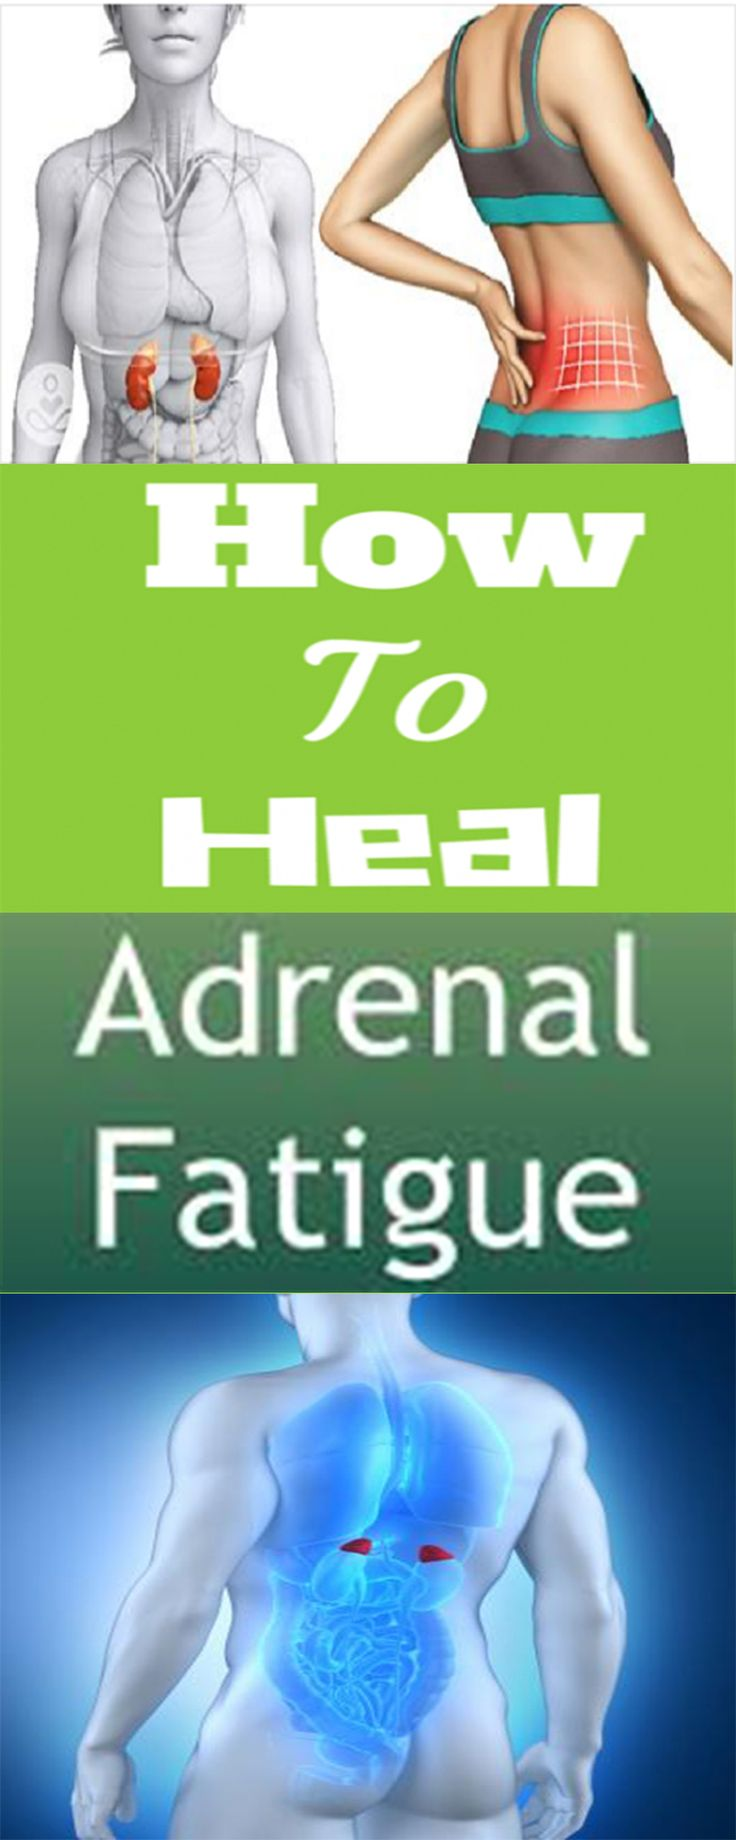 don't fatigue your adrenals